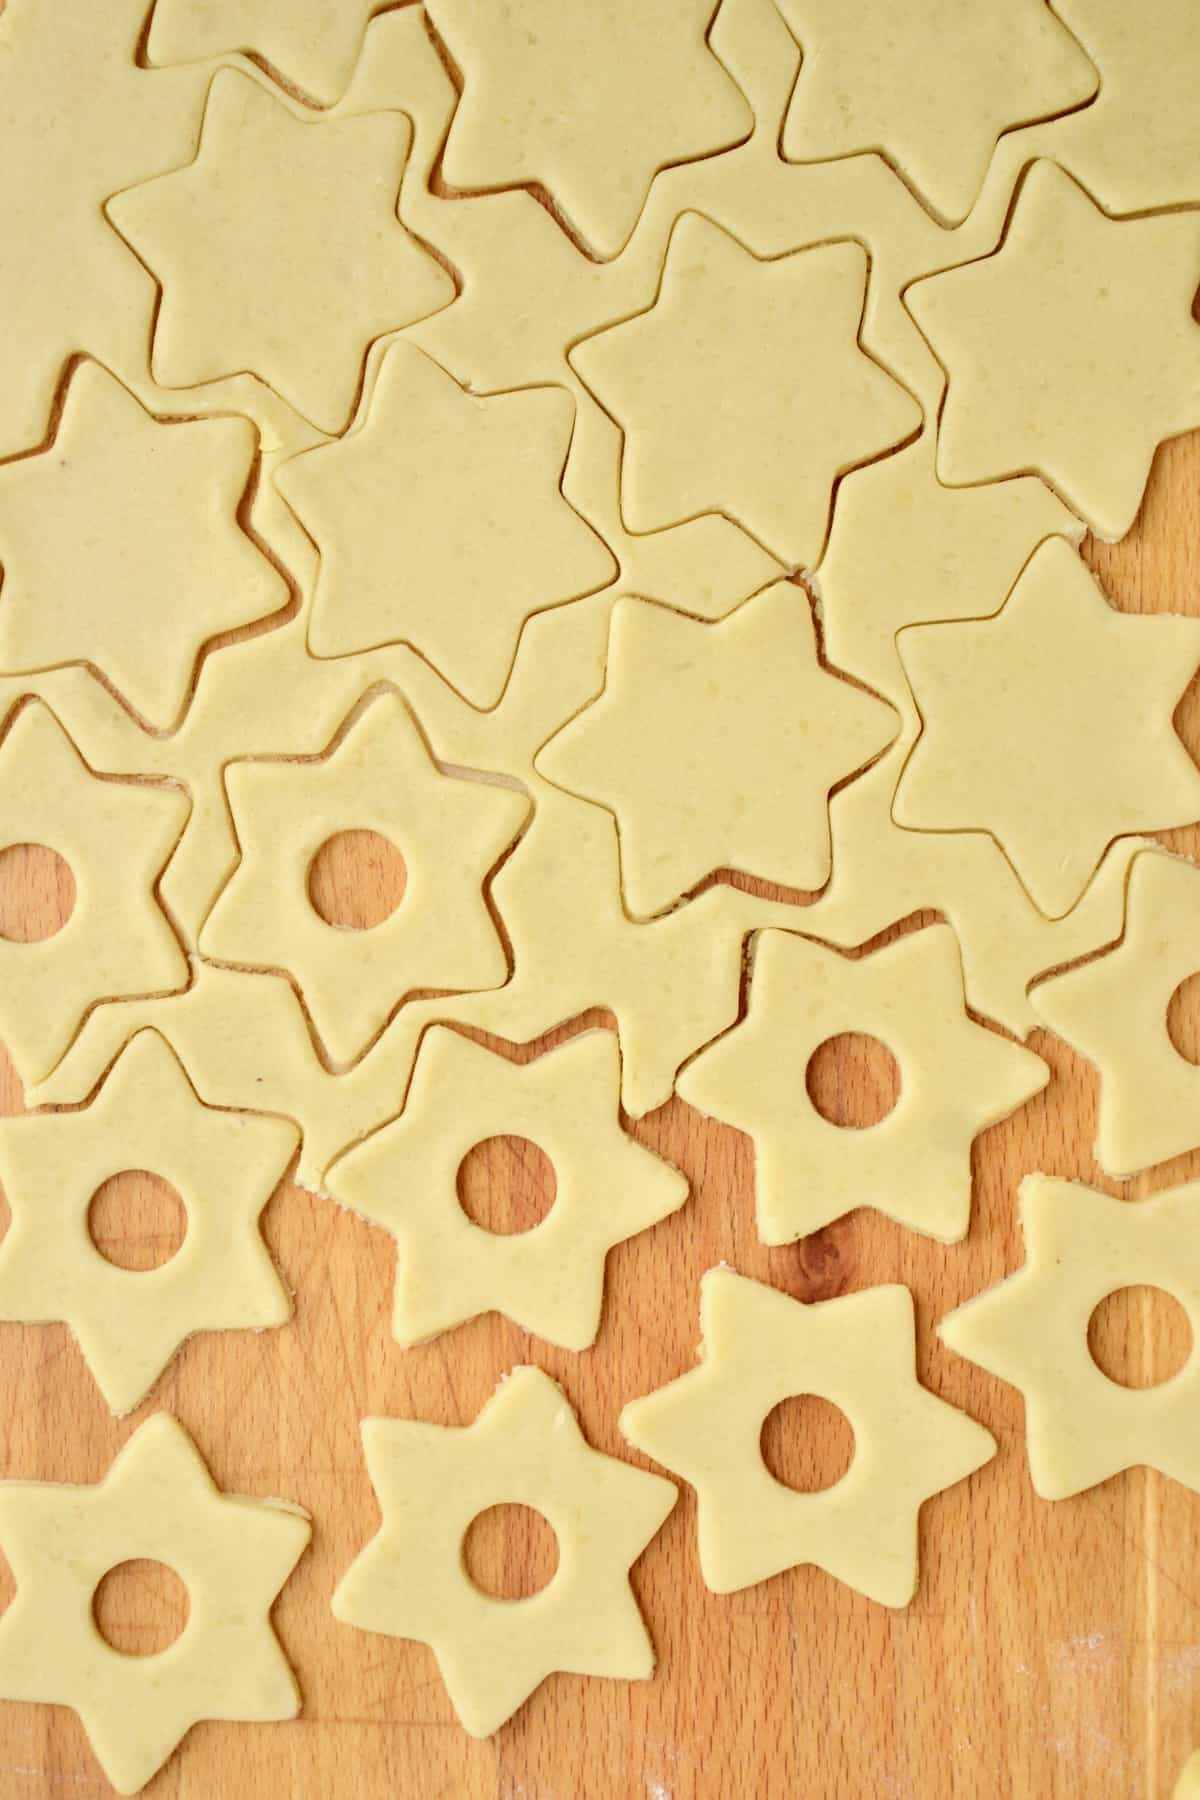 Star shapes cut from a sheet of cookie dough. Half of them have a round opening cut into their center. The dough cuttings between the shapes can be gathered and reused.